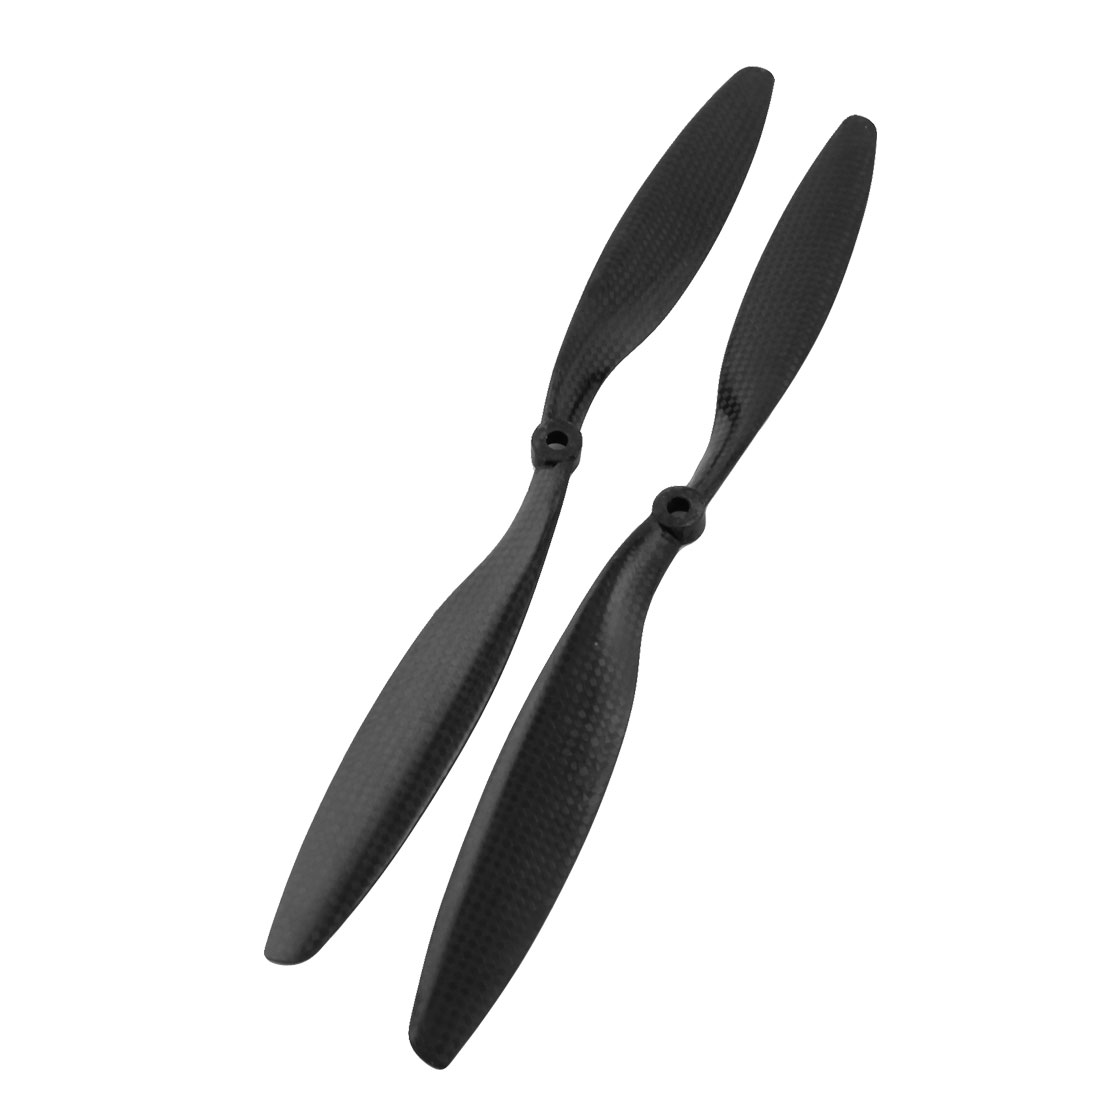 Pair 1245 12x4.5 2-Vane Carbon Fiber CW/CCW Rotating Prop Propeller for RC Quadcopter Hexacopter